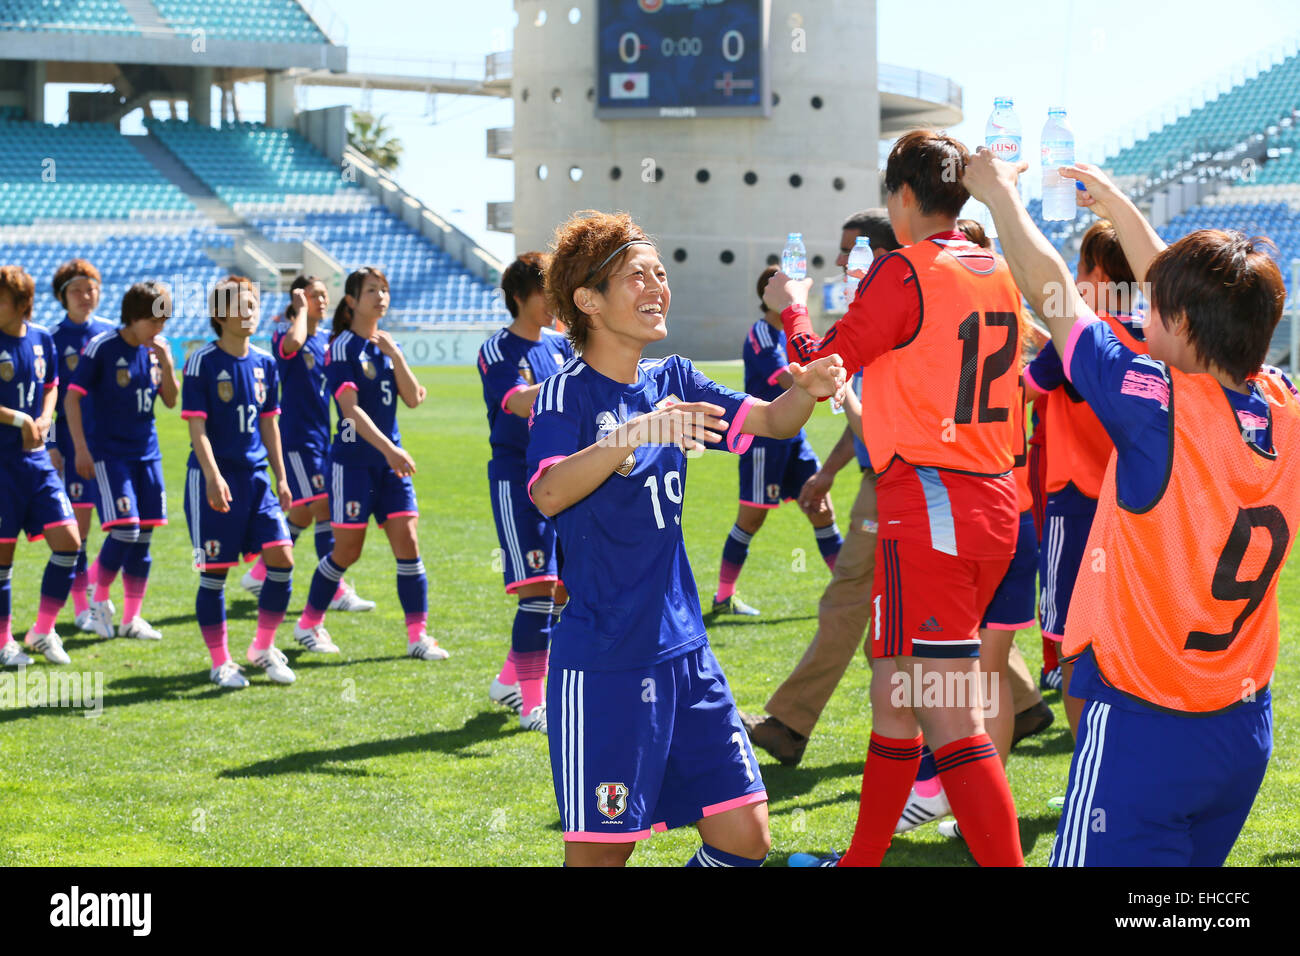 Soccer team in iceland stock photos & soccer team in iceland stock